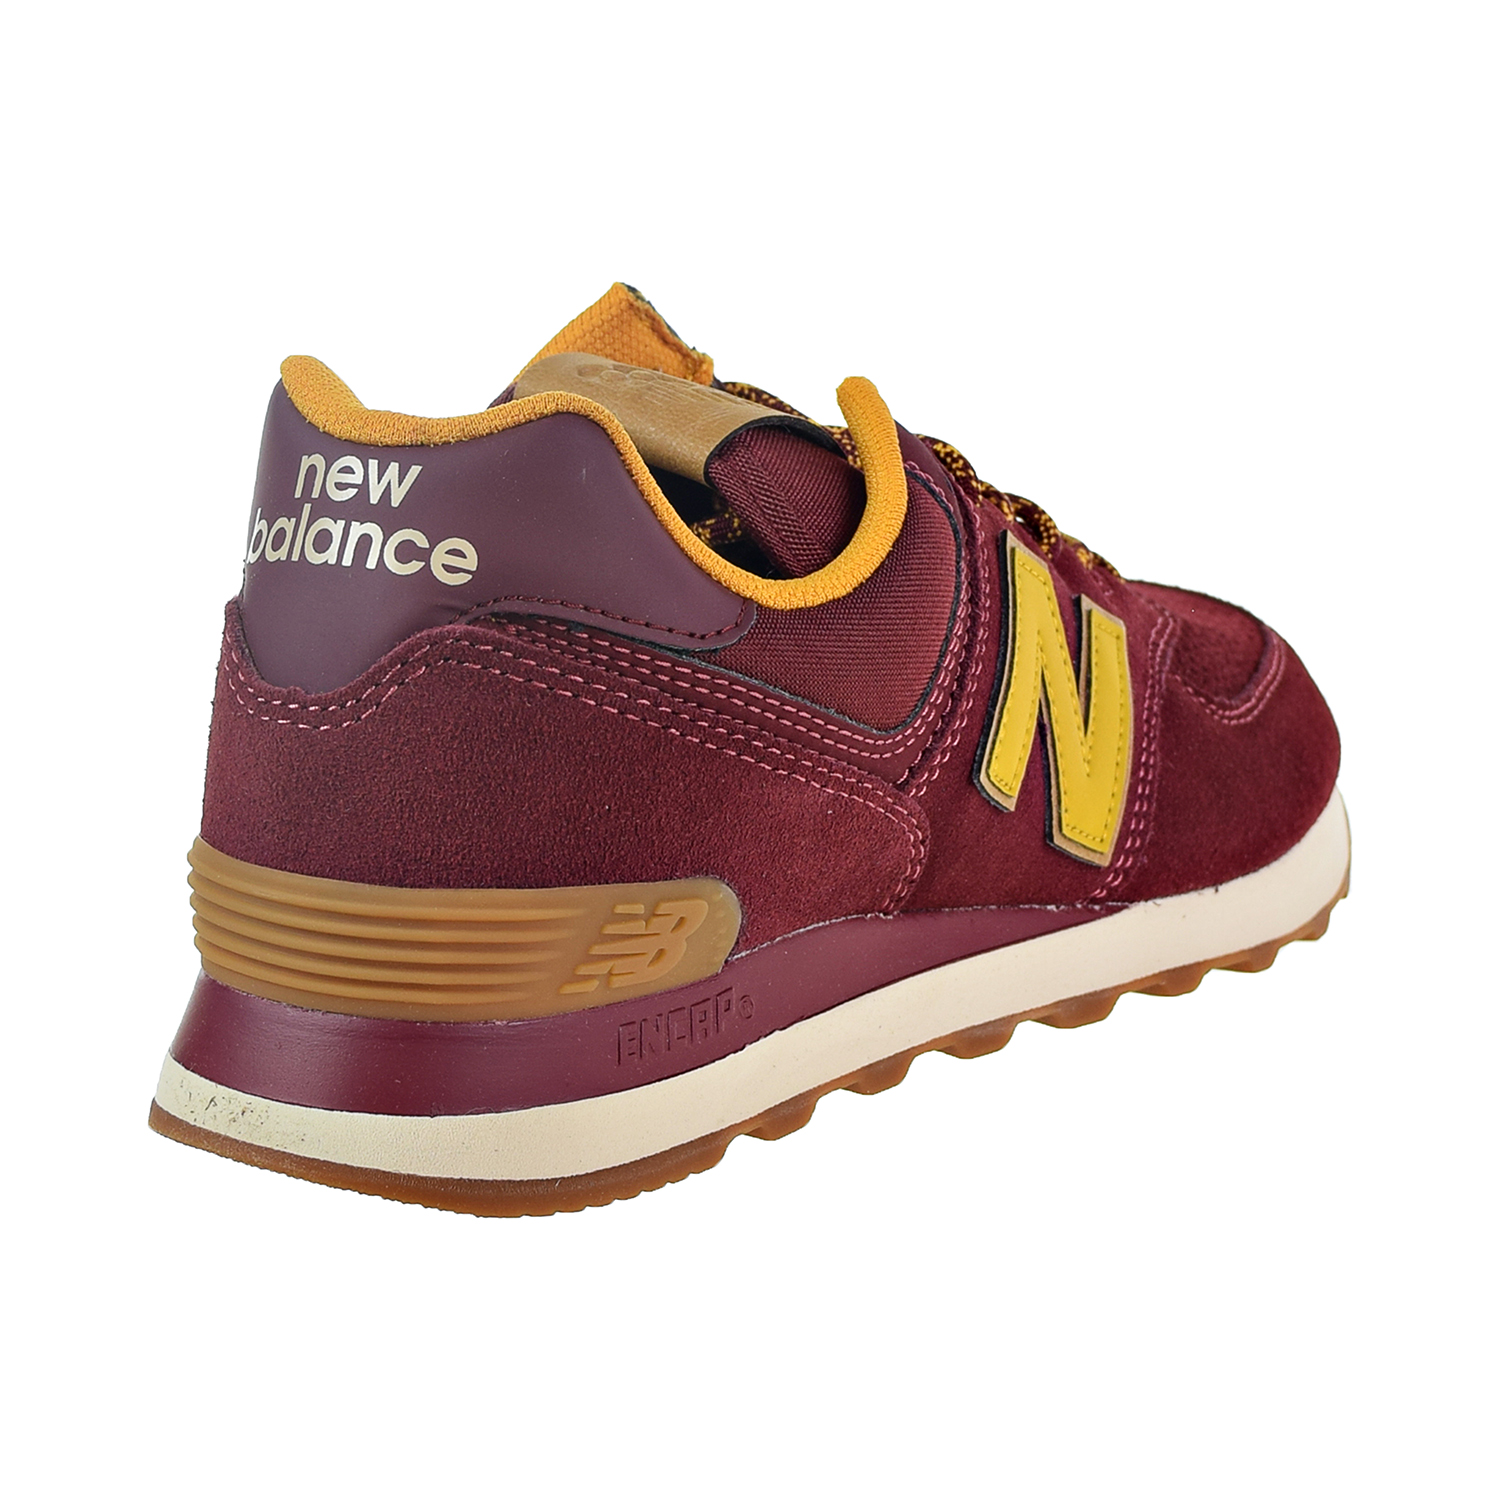 sports shoes dd7a4 d18a7 New Balance 574 Men's Shoes Mercury Red/Yellow ML574-OTC | eBay